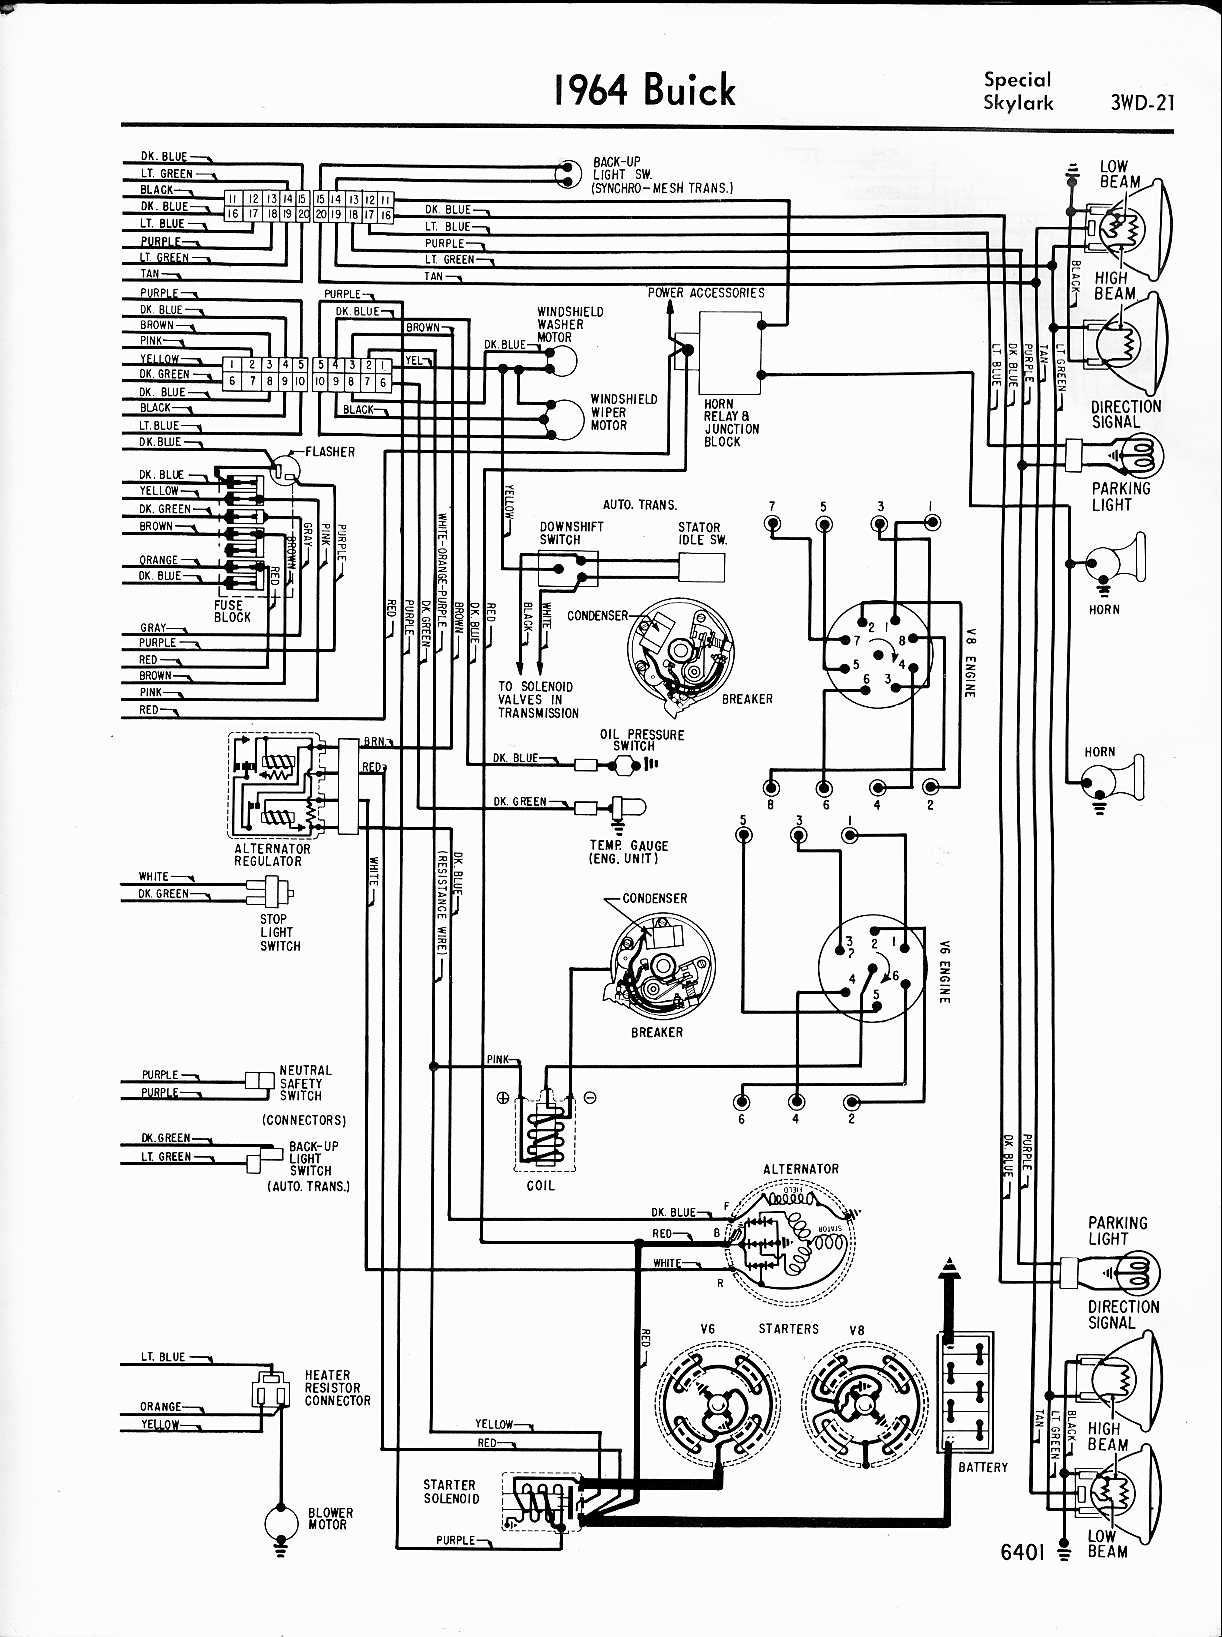 cub cadet model 1440 wiring diagram best wiring library Schematic for Relay hight resolution of 1953 buick wiring diagram simple wiring schema 262b wiring schematic for a 1953